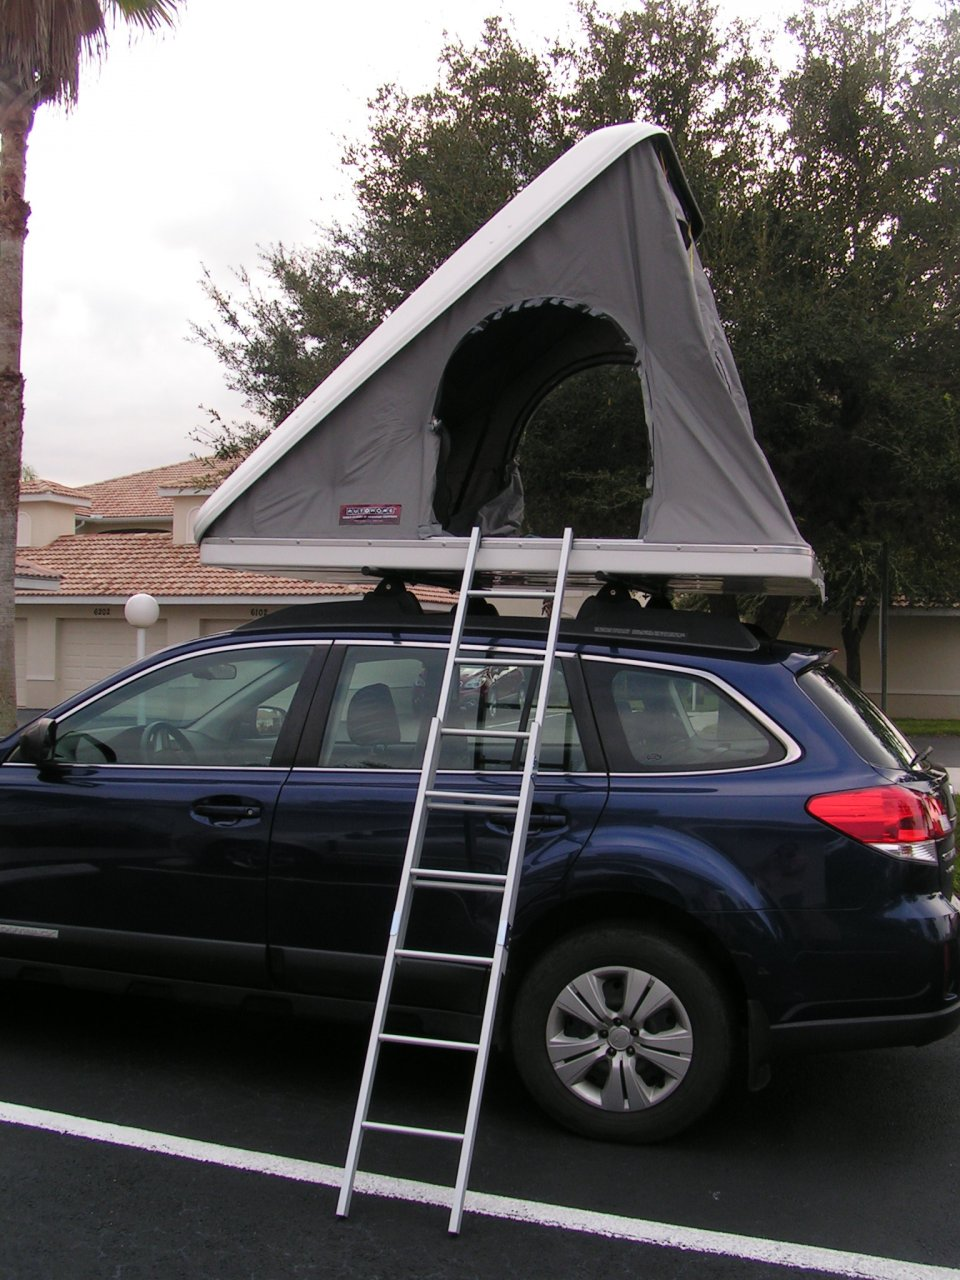 Columbus Variant CV/01 fiberglass pop-up RTT. Slim and aerodynamic design that has had no impact on our miles per gallon. Ready for c&ing in seconds. & For Sale - Columbus Variant Hard Shell Roof Top Tent for sale ...